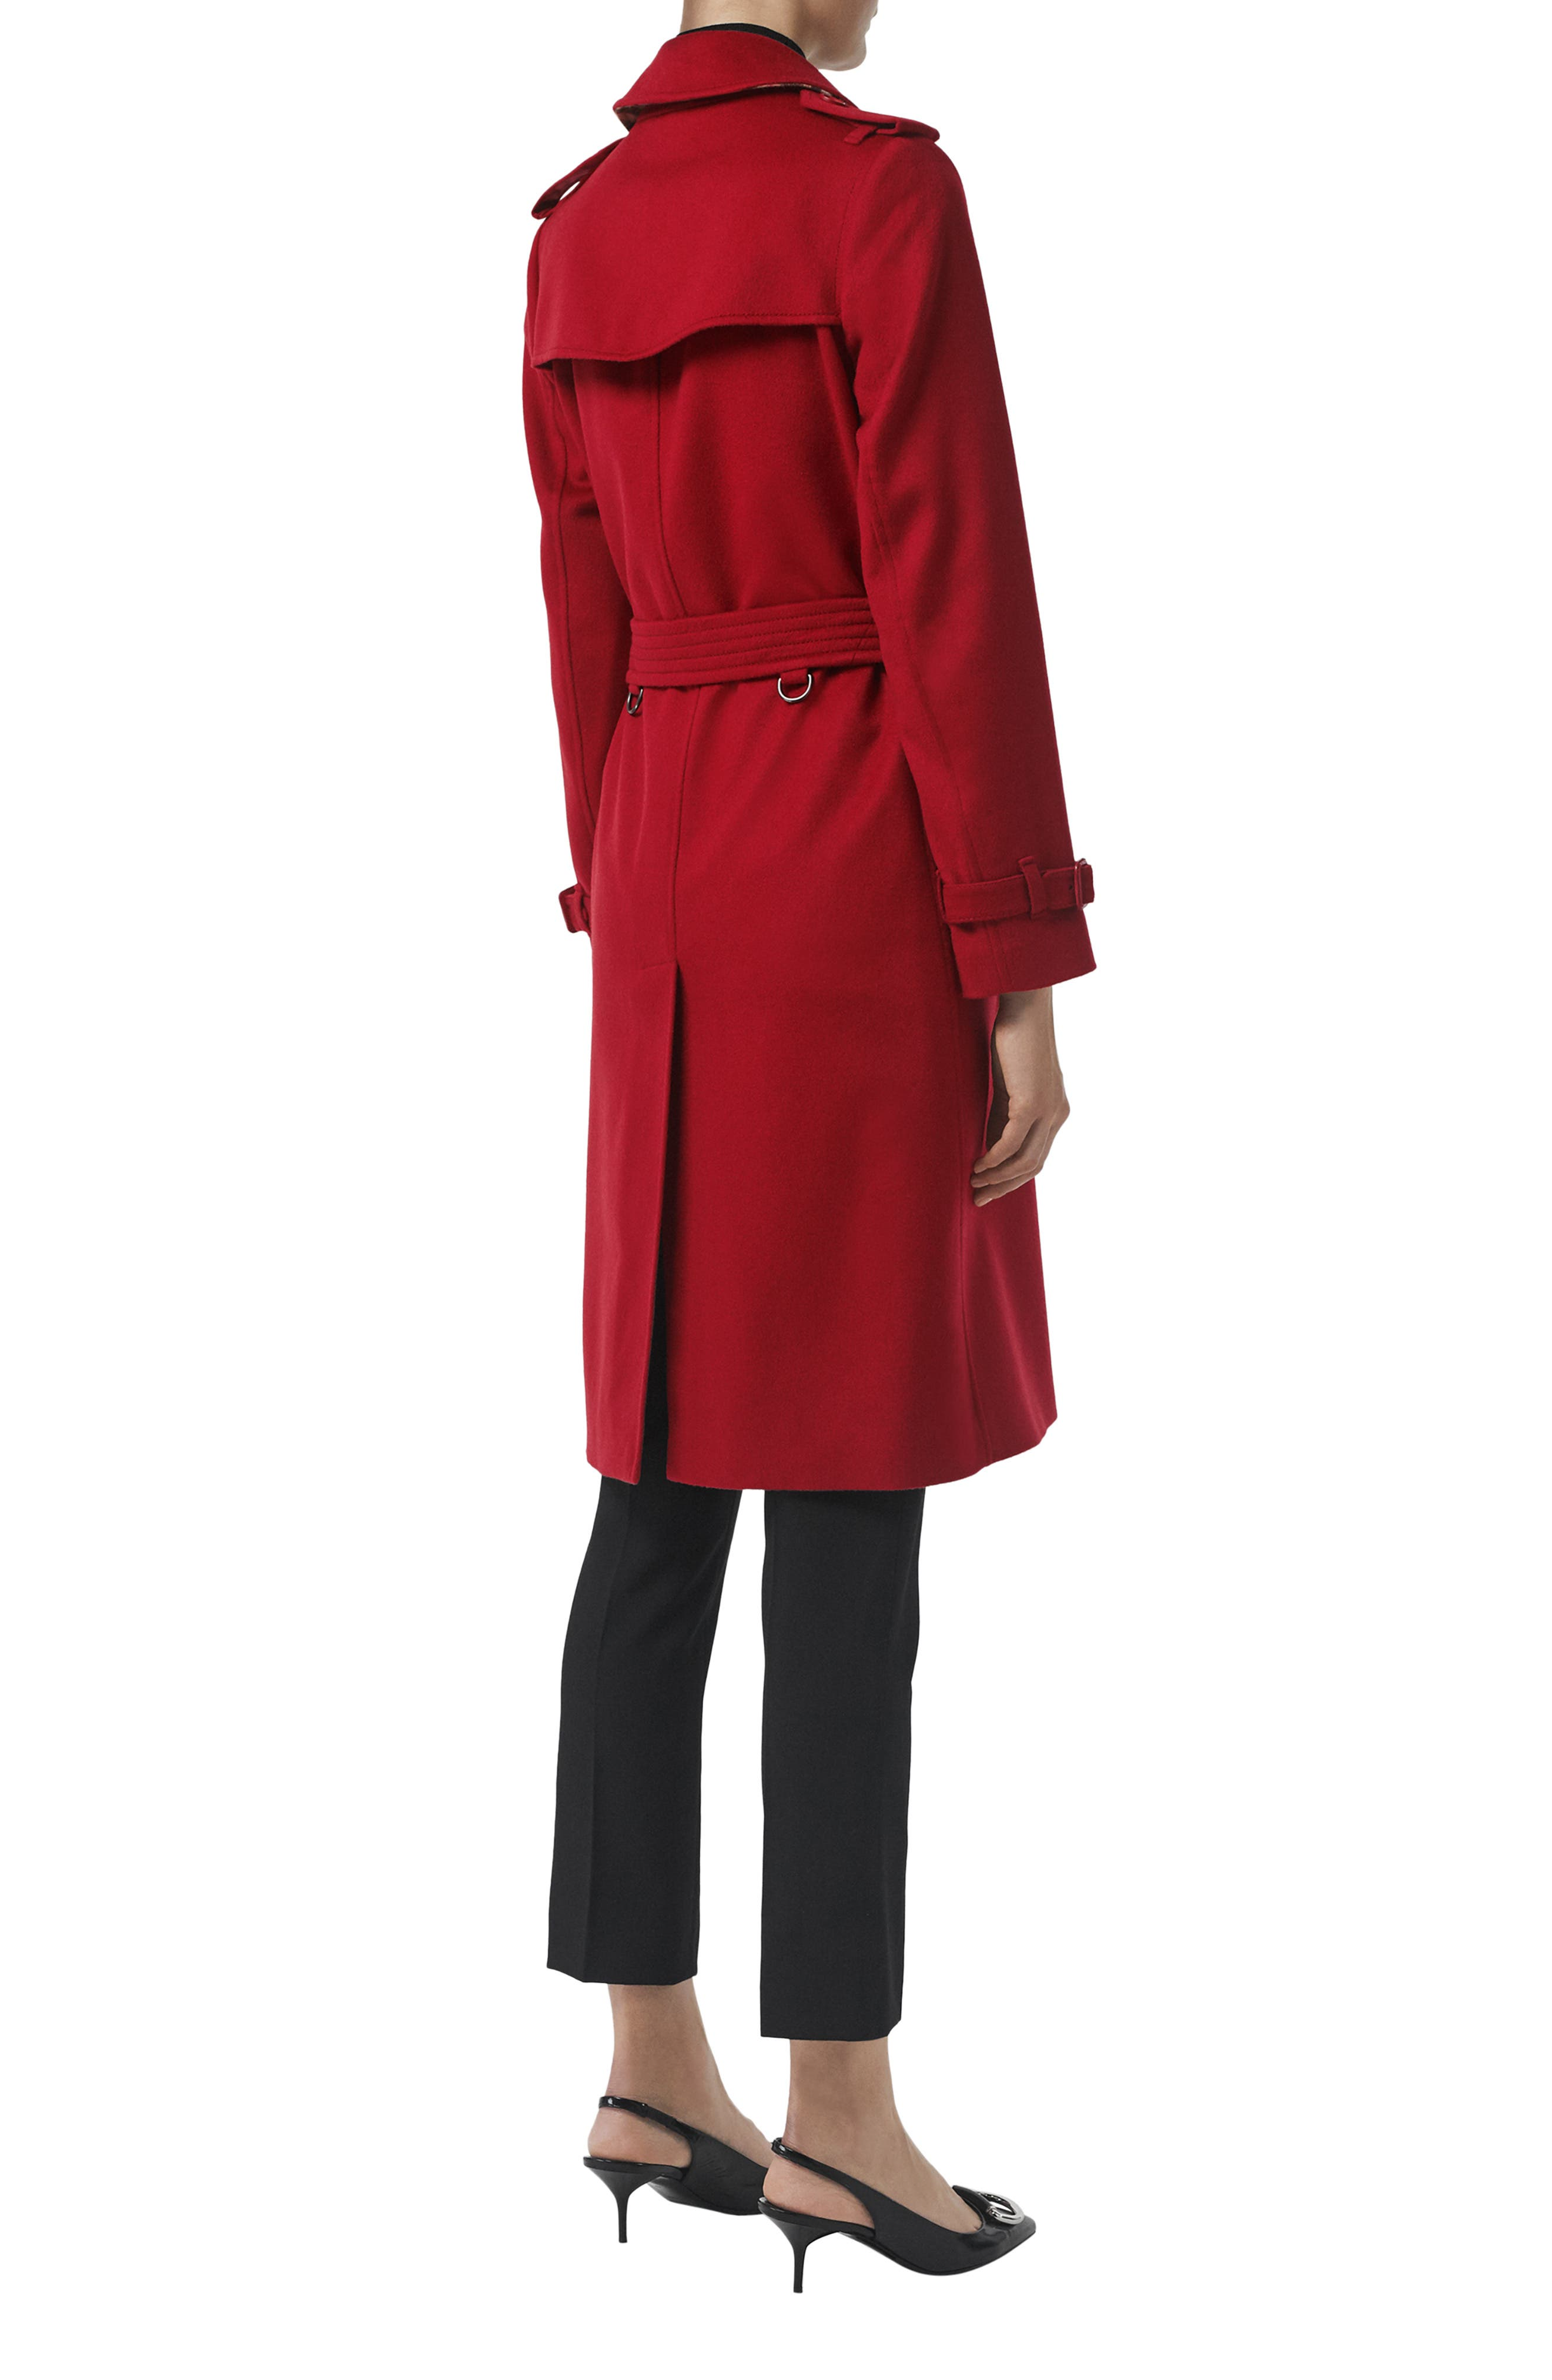 Kensington Cashmere Trench Coat,                             Alternate thumbnail 6, color,                             PARADE RED